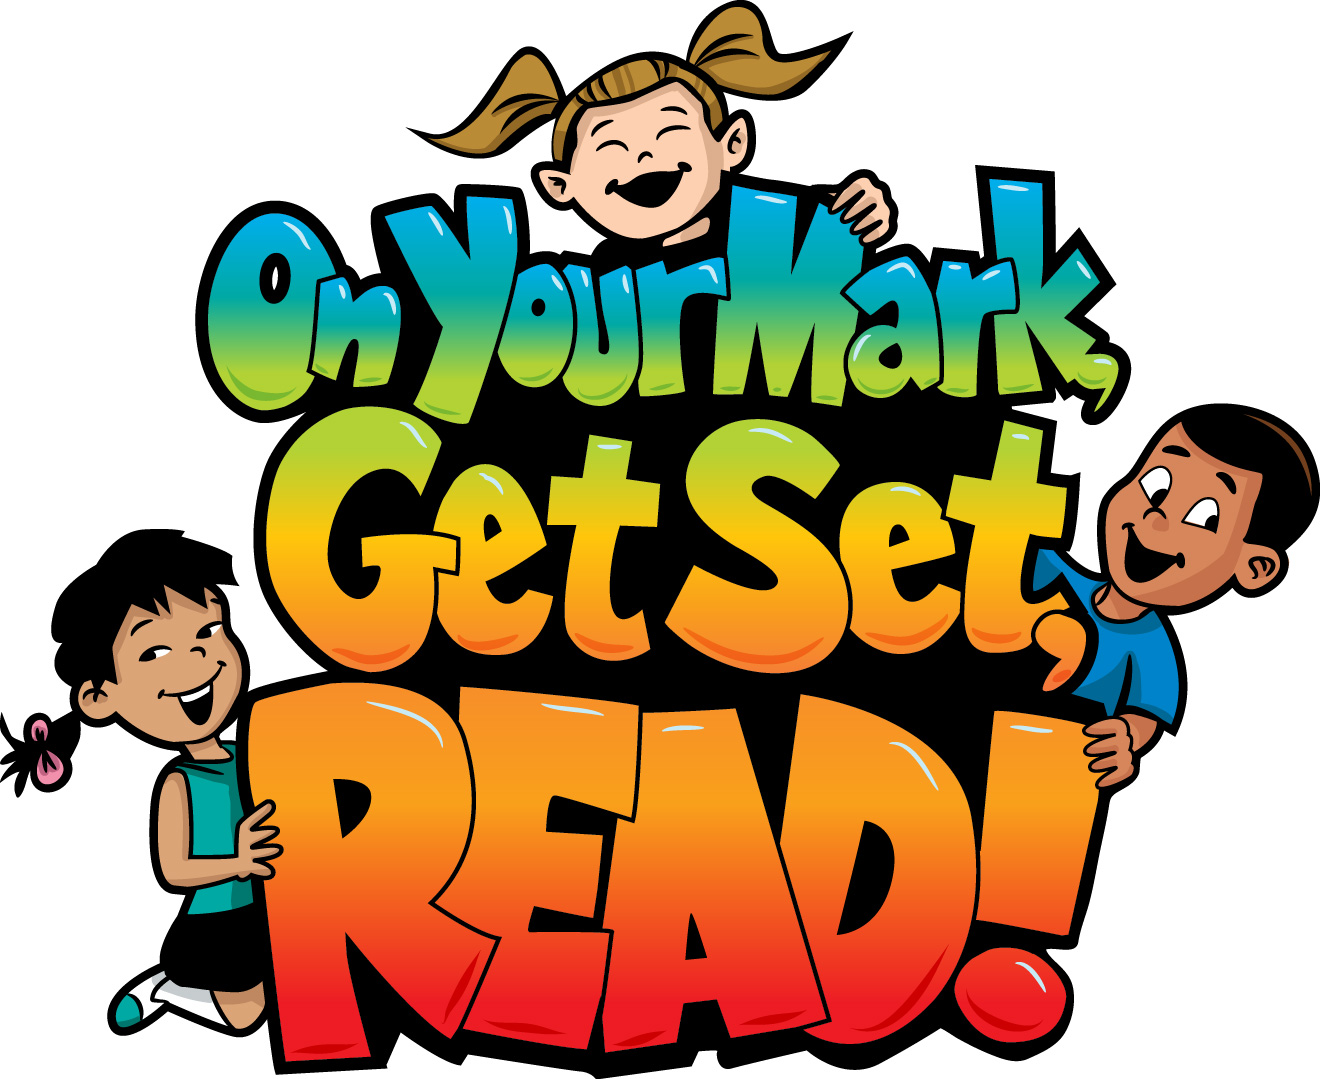 Worksheet Reading Programs For Children worksheet reading programs for children mikyu free pleasant hills library childrens area summer club has started